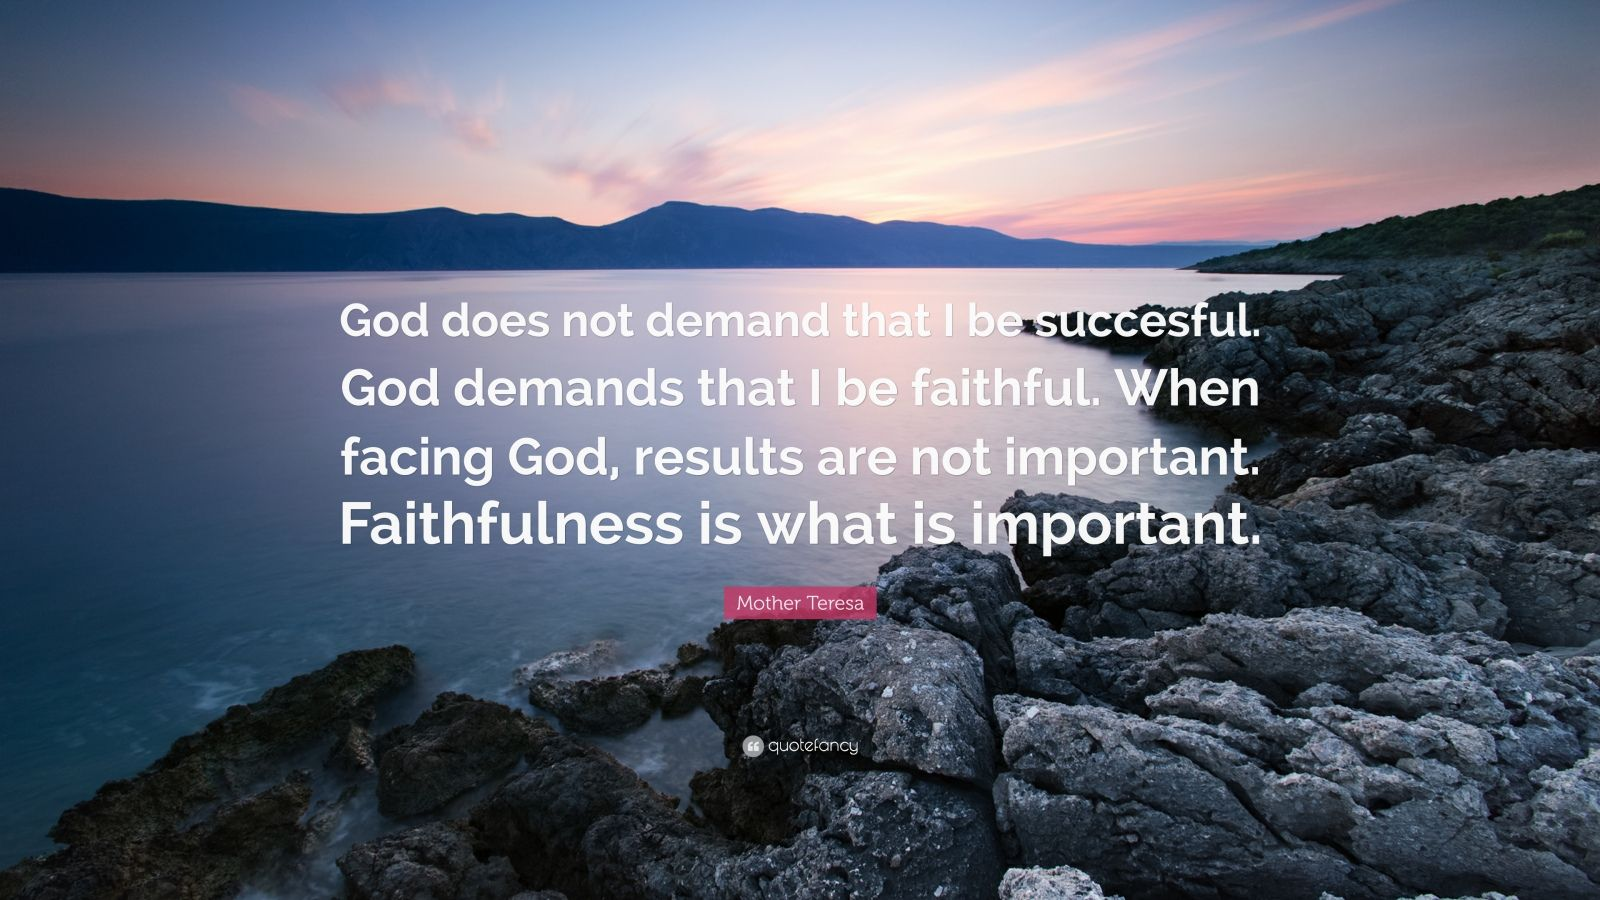 """Mother Teresa Quote: """"God does not demand that I be succesful. God demands that I be faithful. When facing God, results are not important. Faithfulness is what is important."""""""